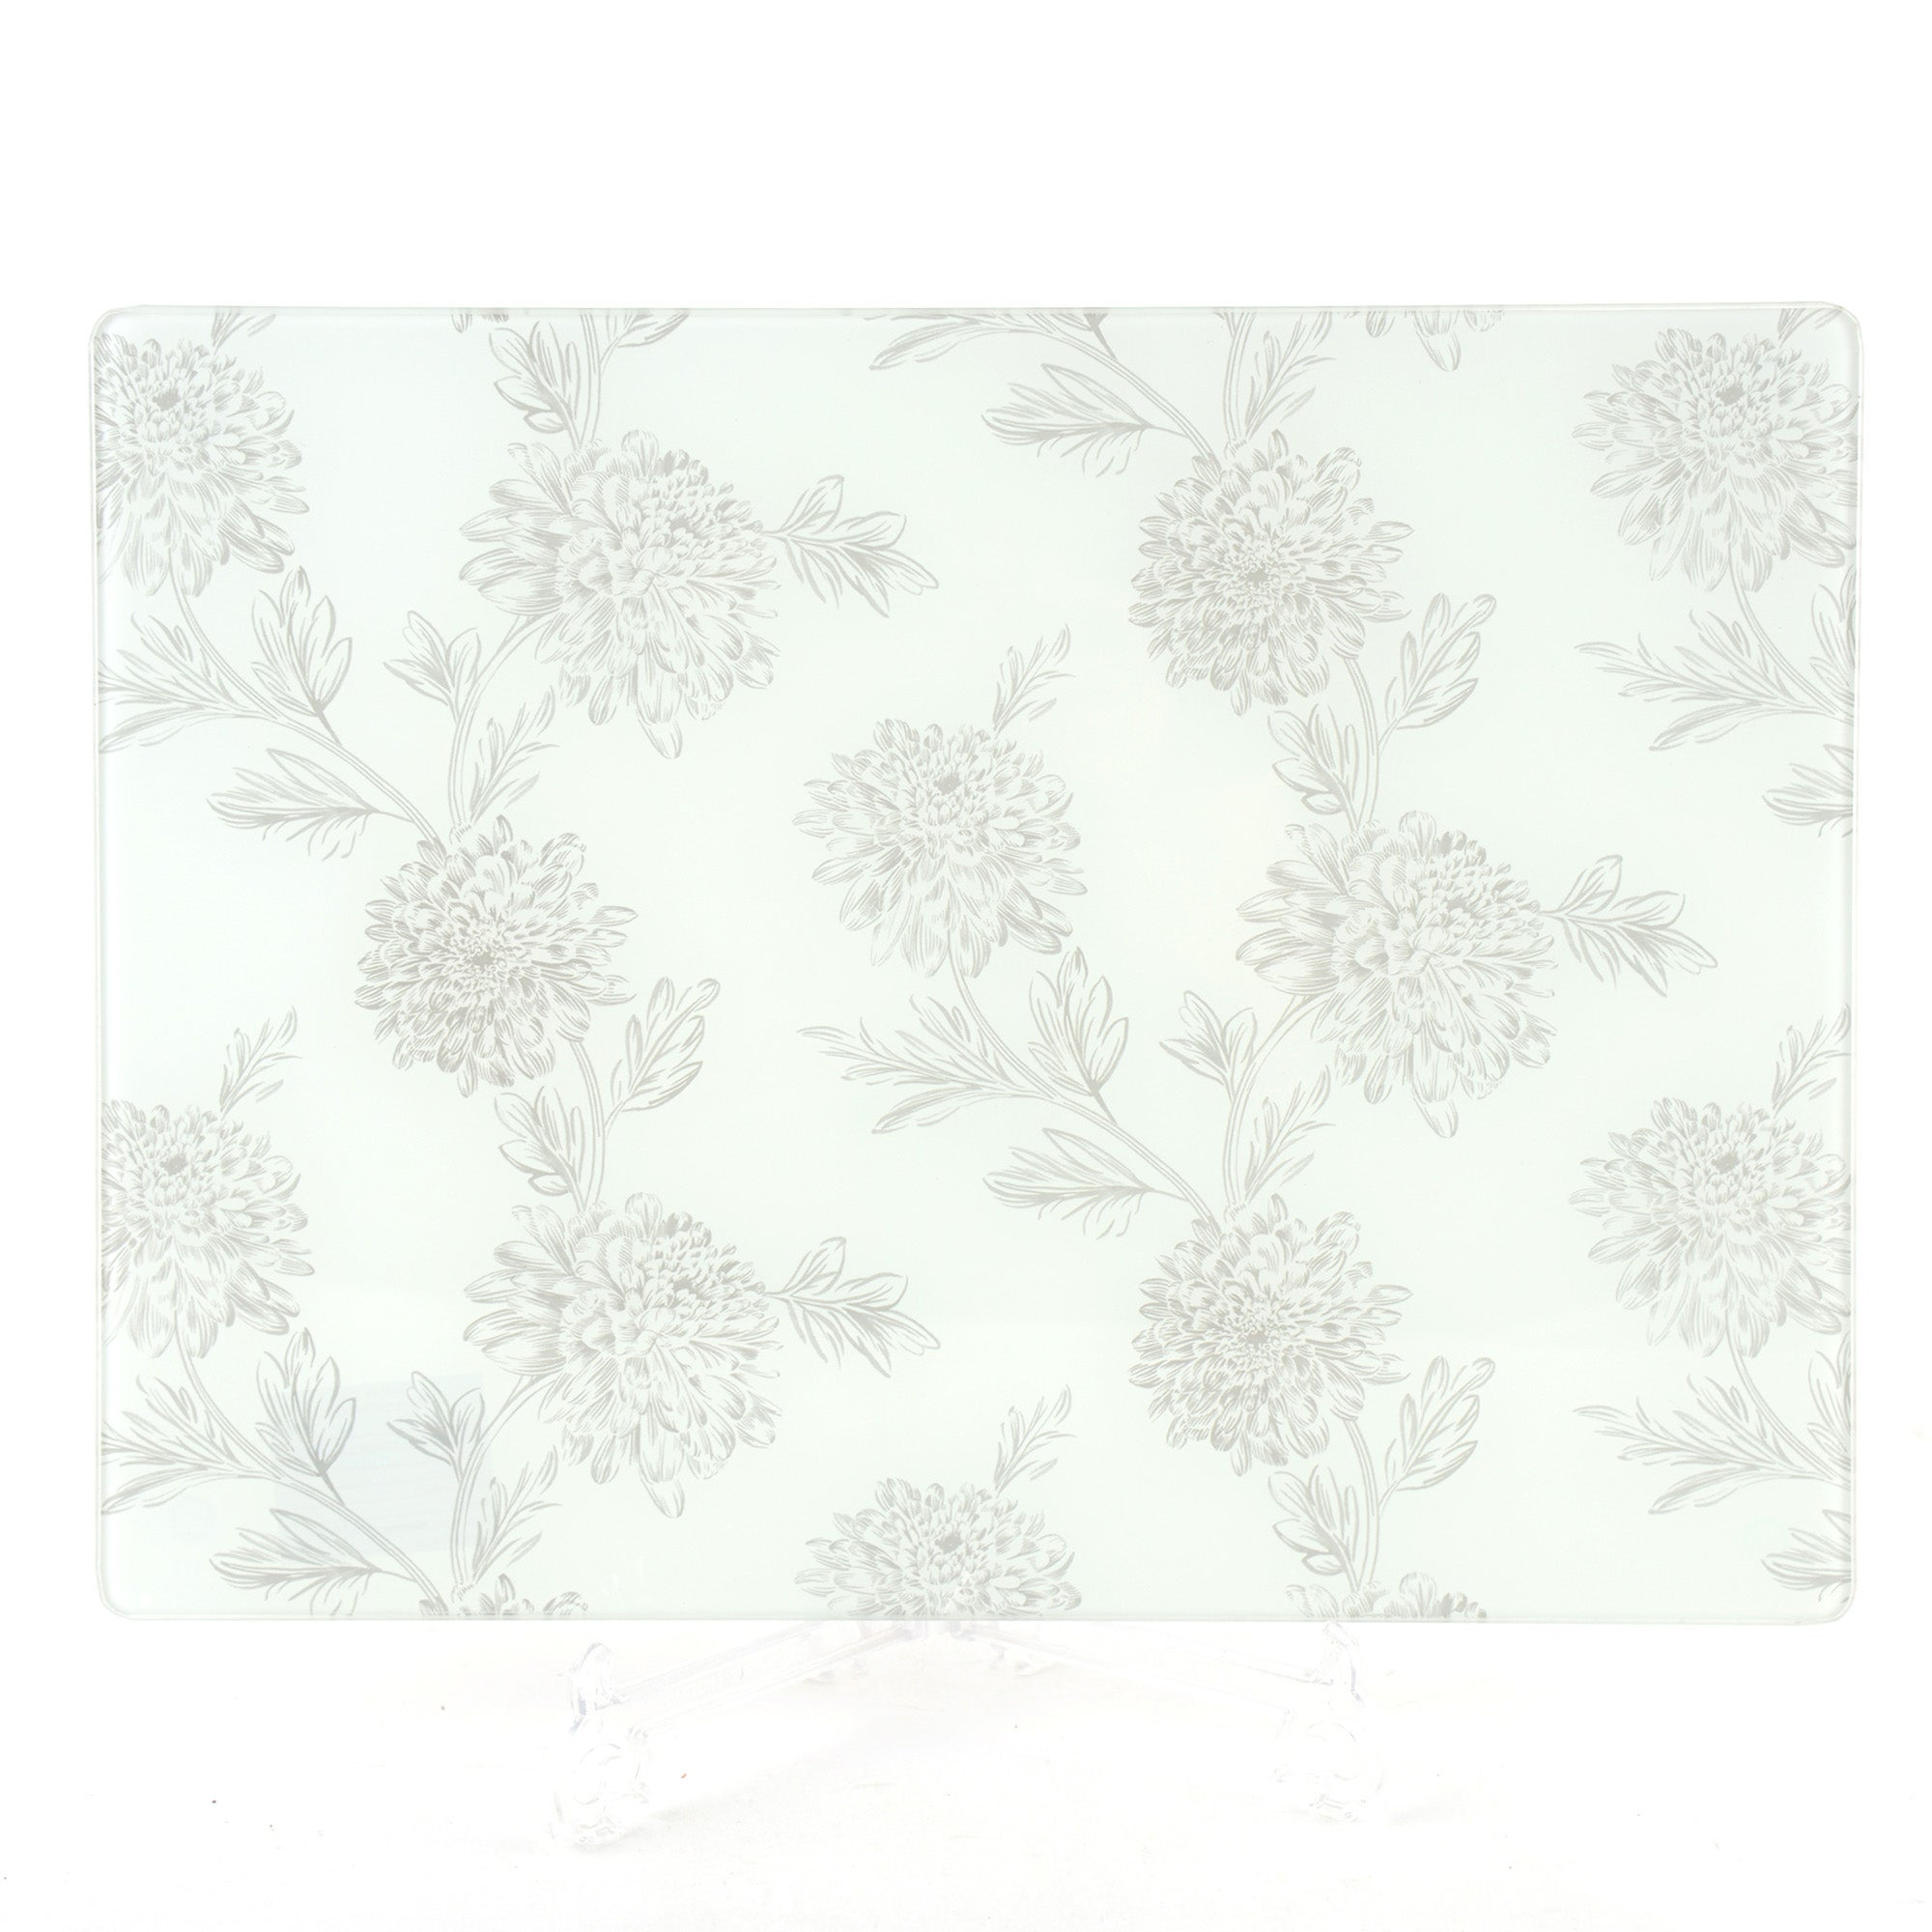 Etched Floral Collection Glass Worktop Saver